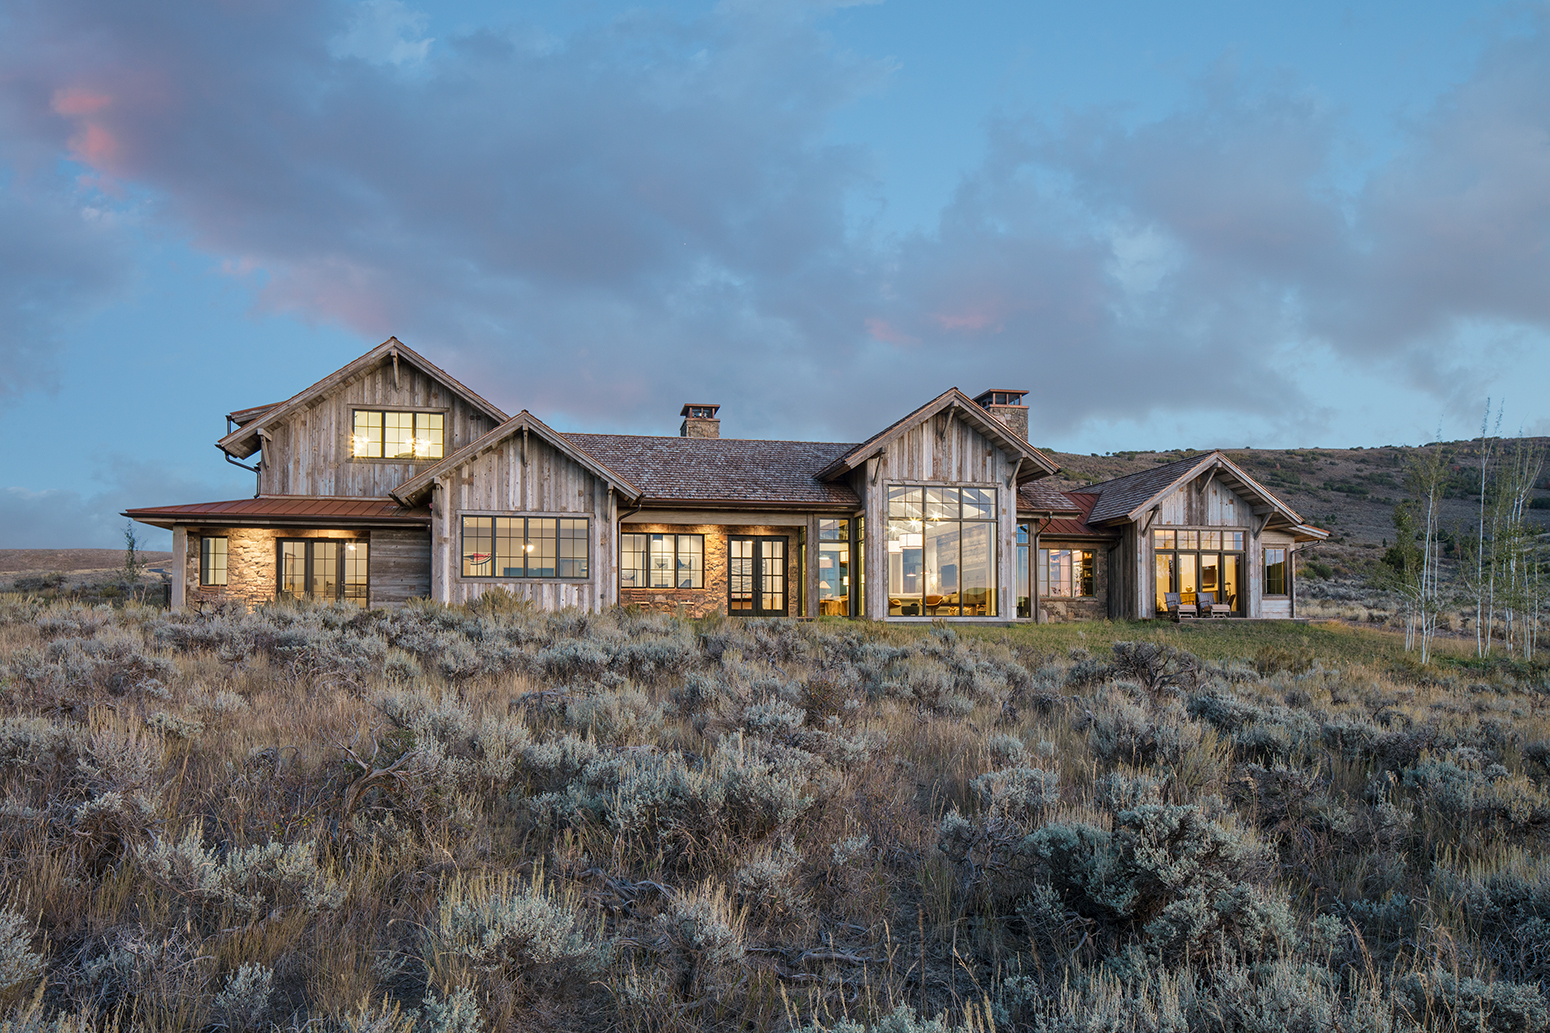 This is a picture of a rustic, luxury home in a meadow of sage brush. The photograph was taken at dusk so the clouds are pink, the skies are blue and a warm glow is radiating from the windows.